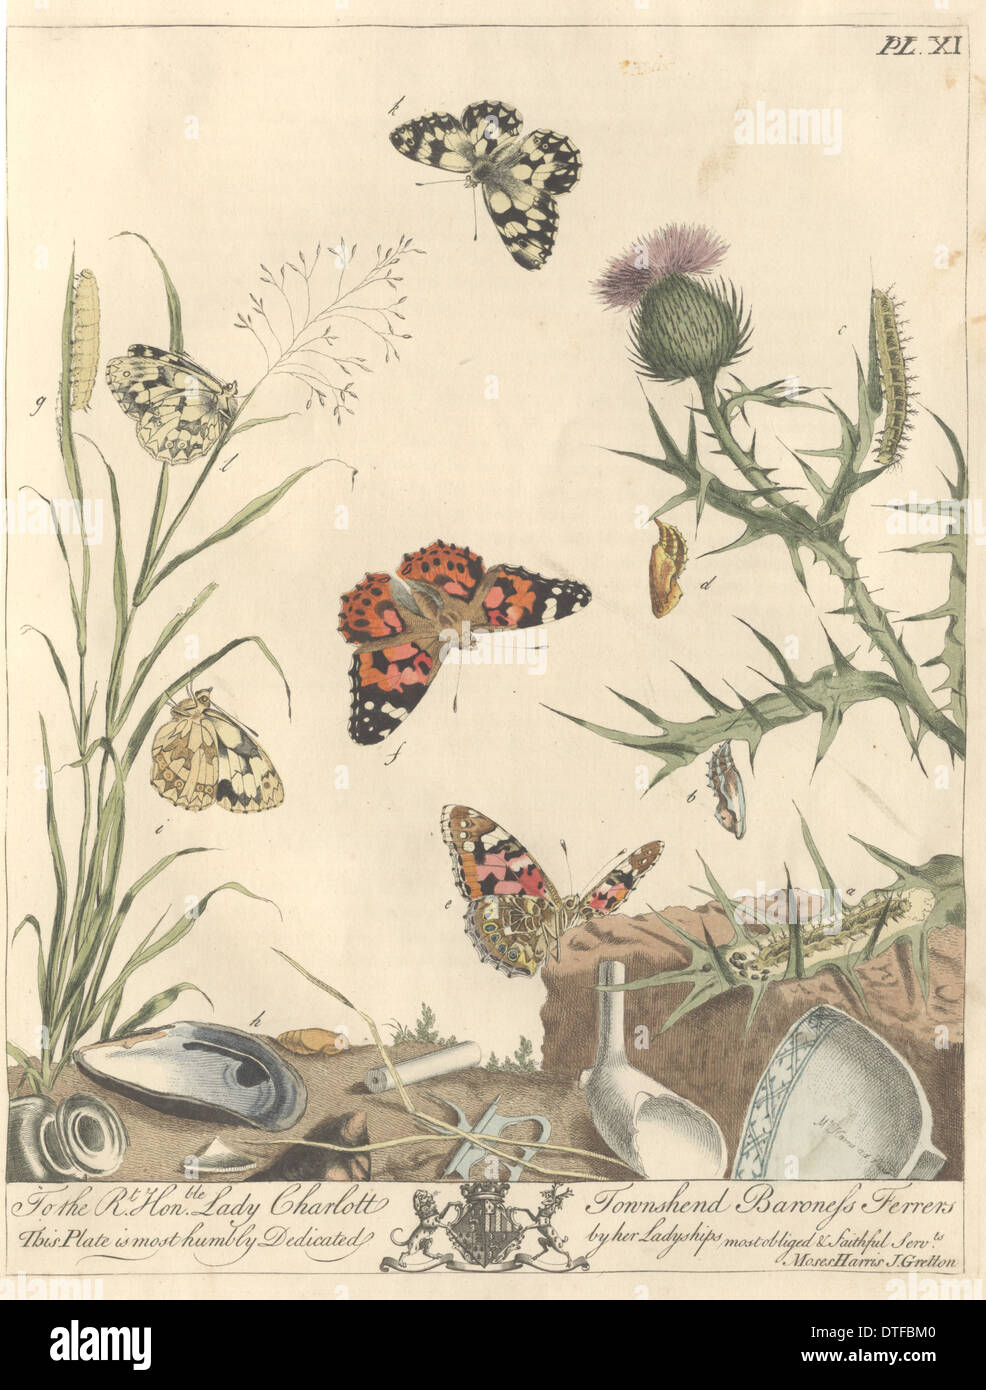 Plate XI, The Painted Lady - Stock Image